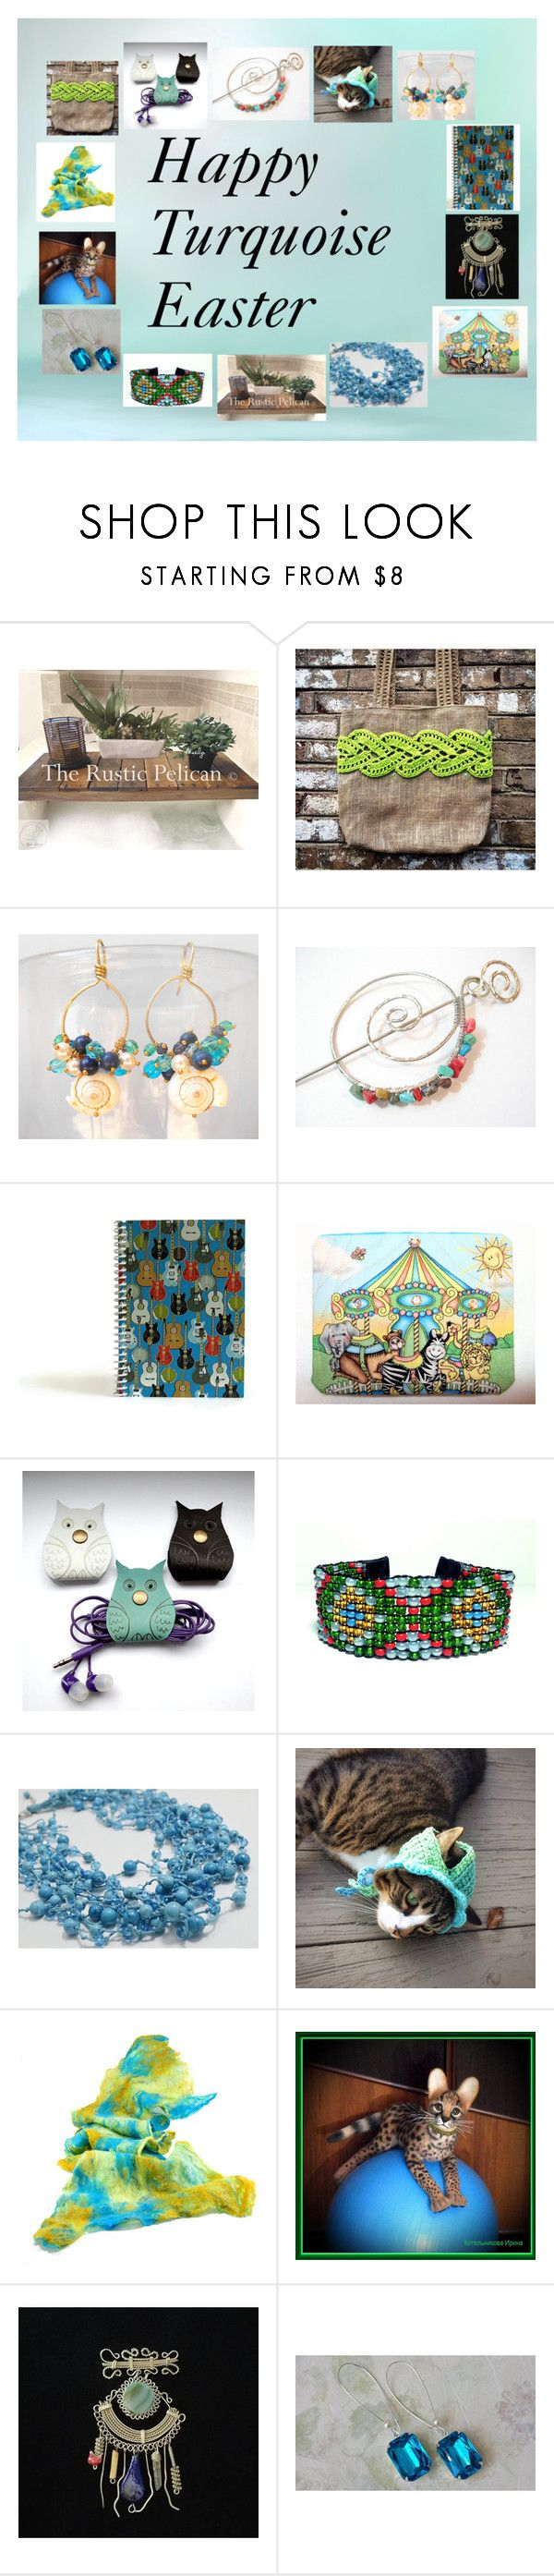 """""""Happy Turquoise Easter: Handmade Gifts"""" by paulinemcewen ❤ liked on Polyvore featuring Tejido"""